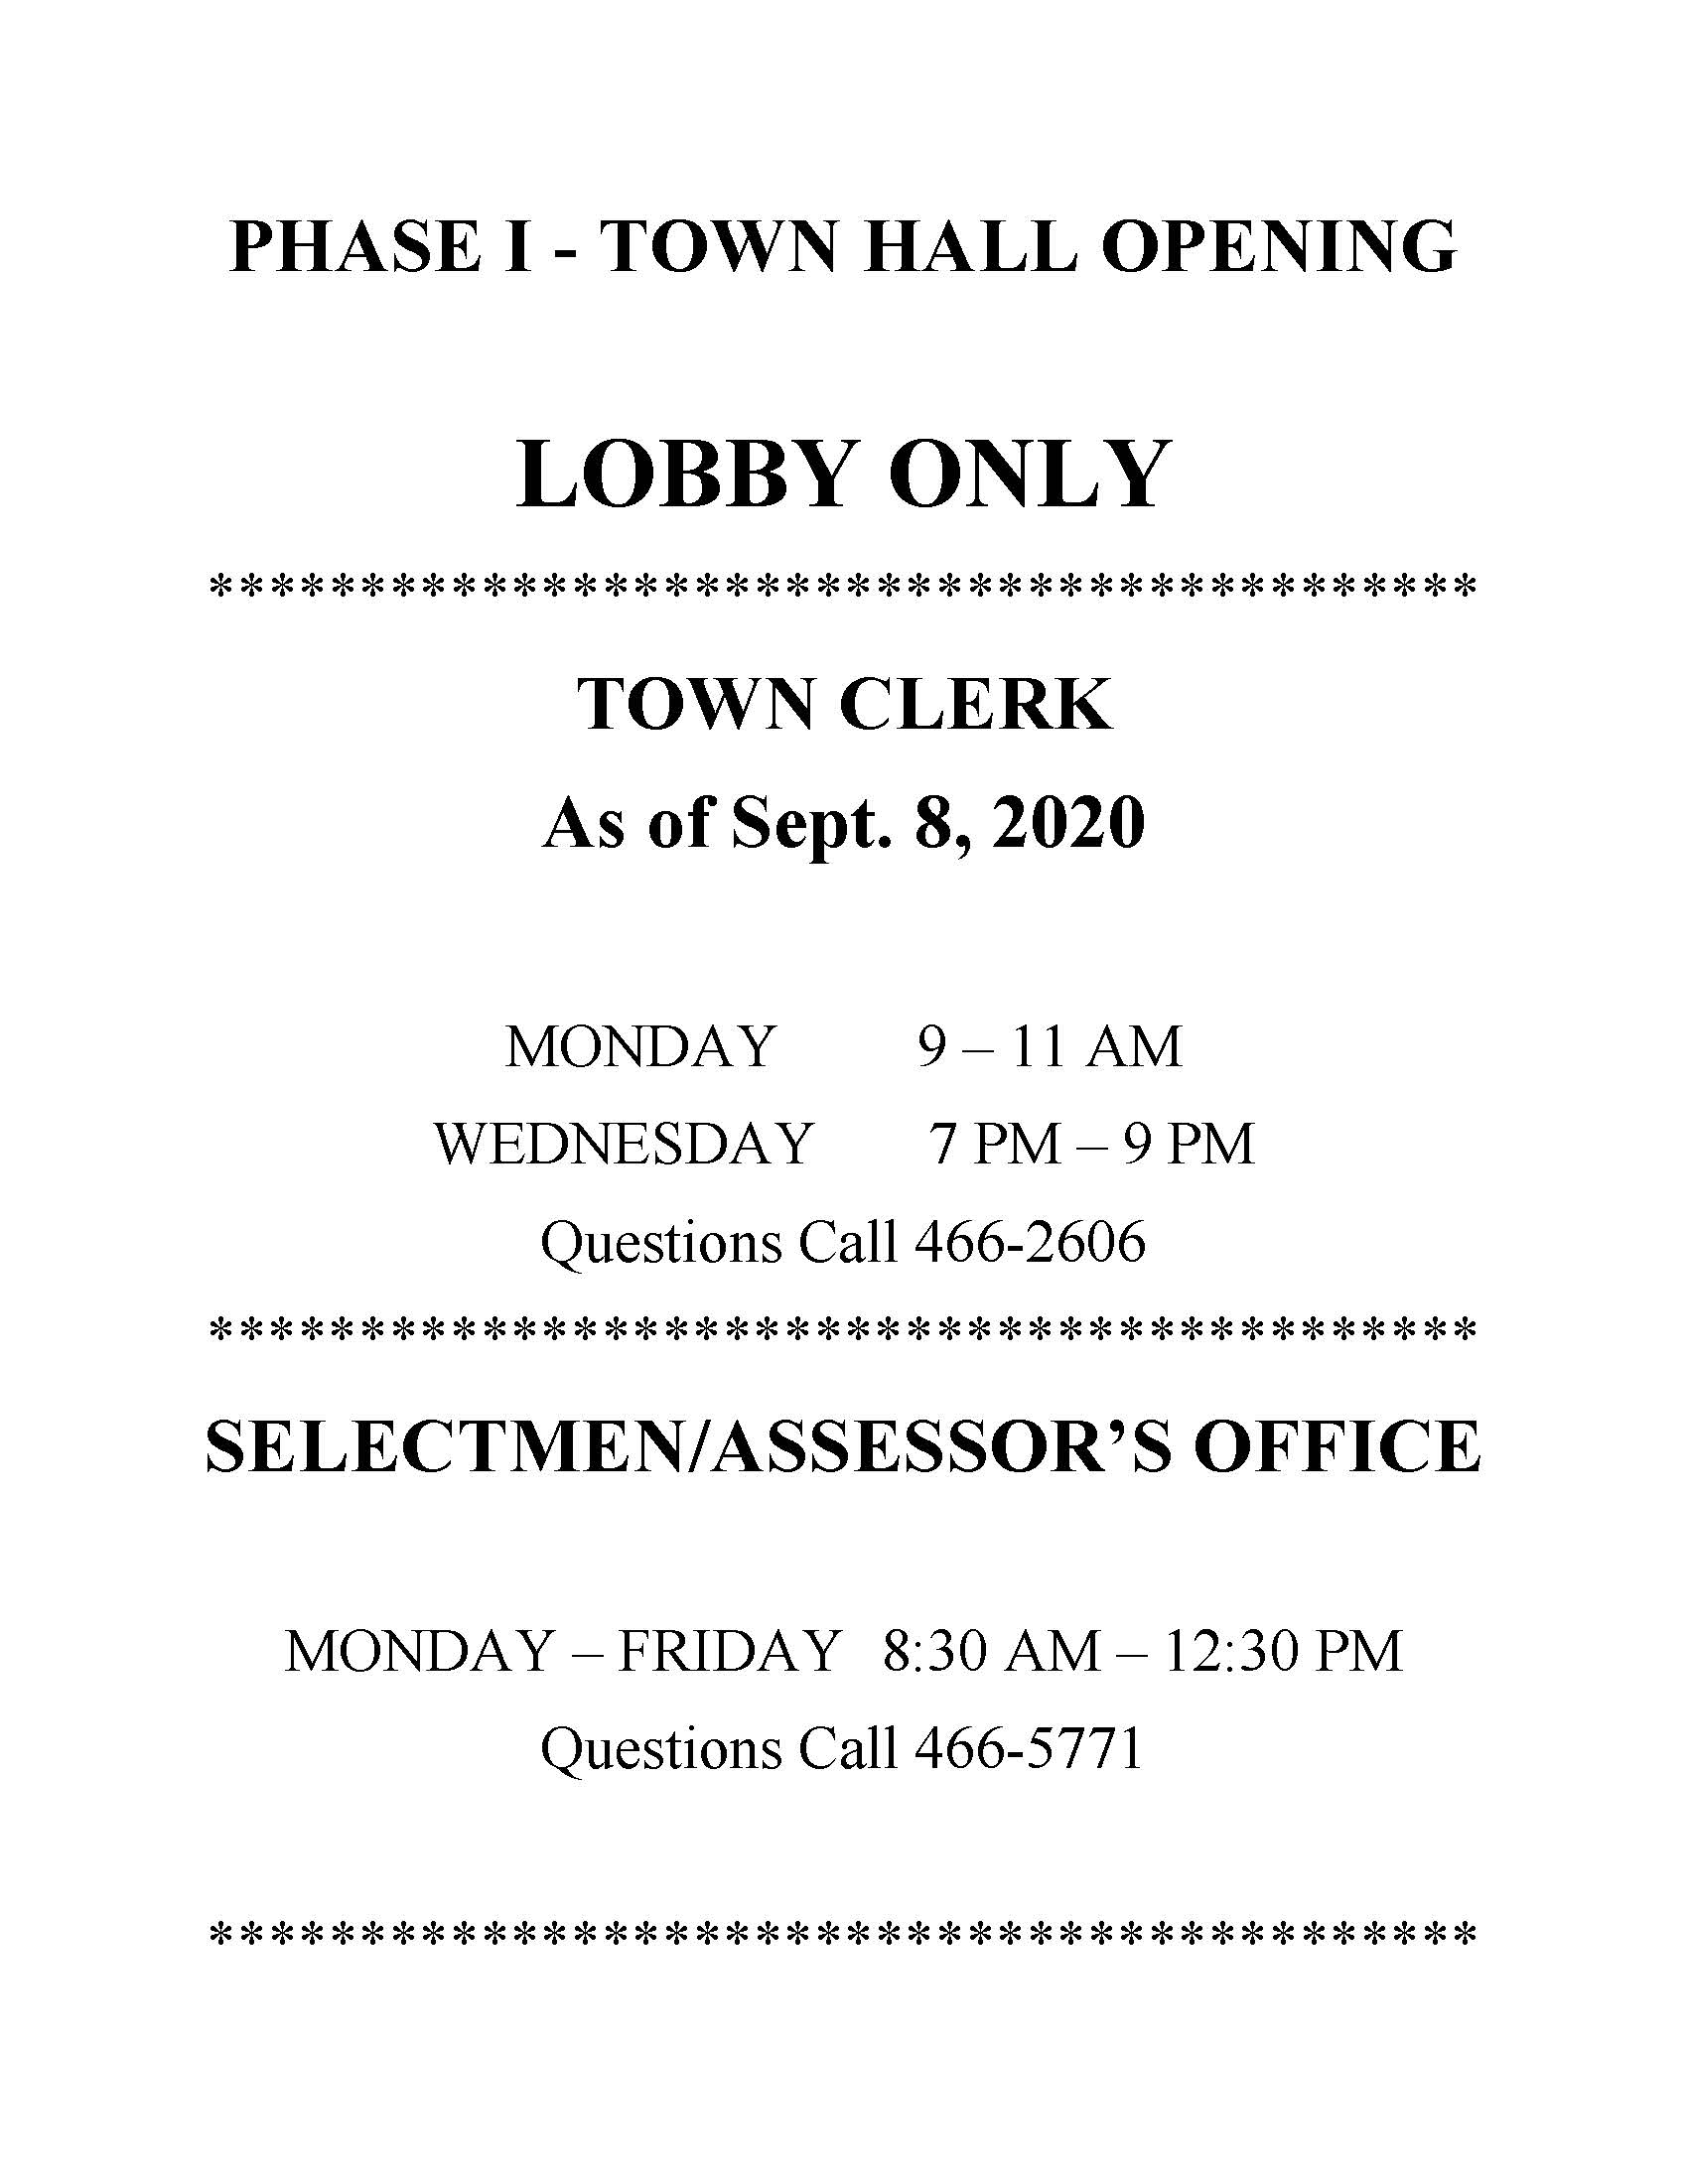 Phase 1 as of Sept. 8 lobby hours